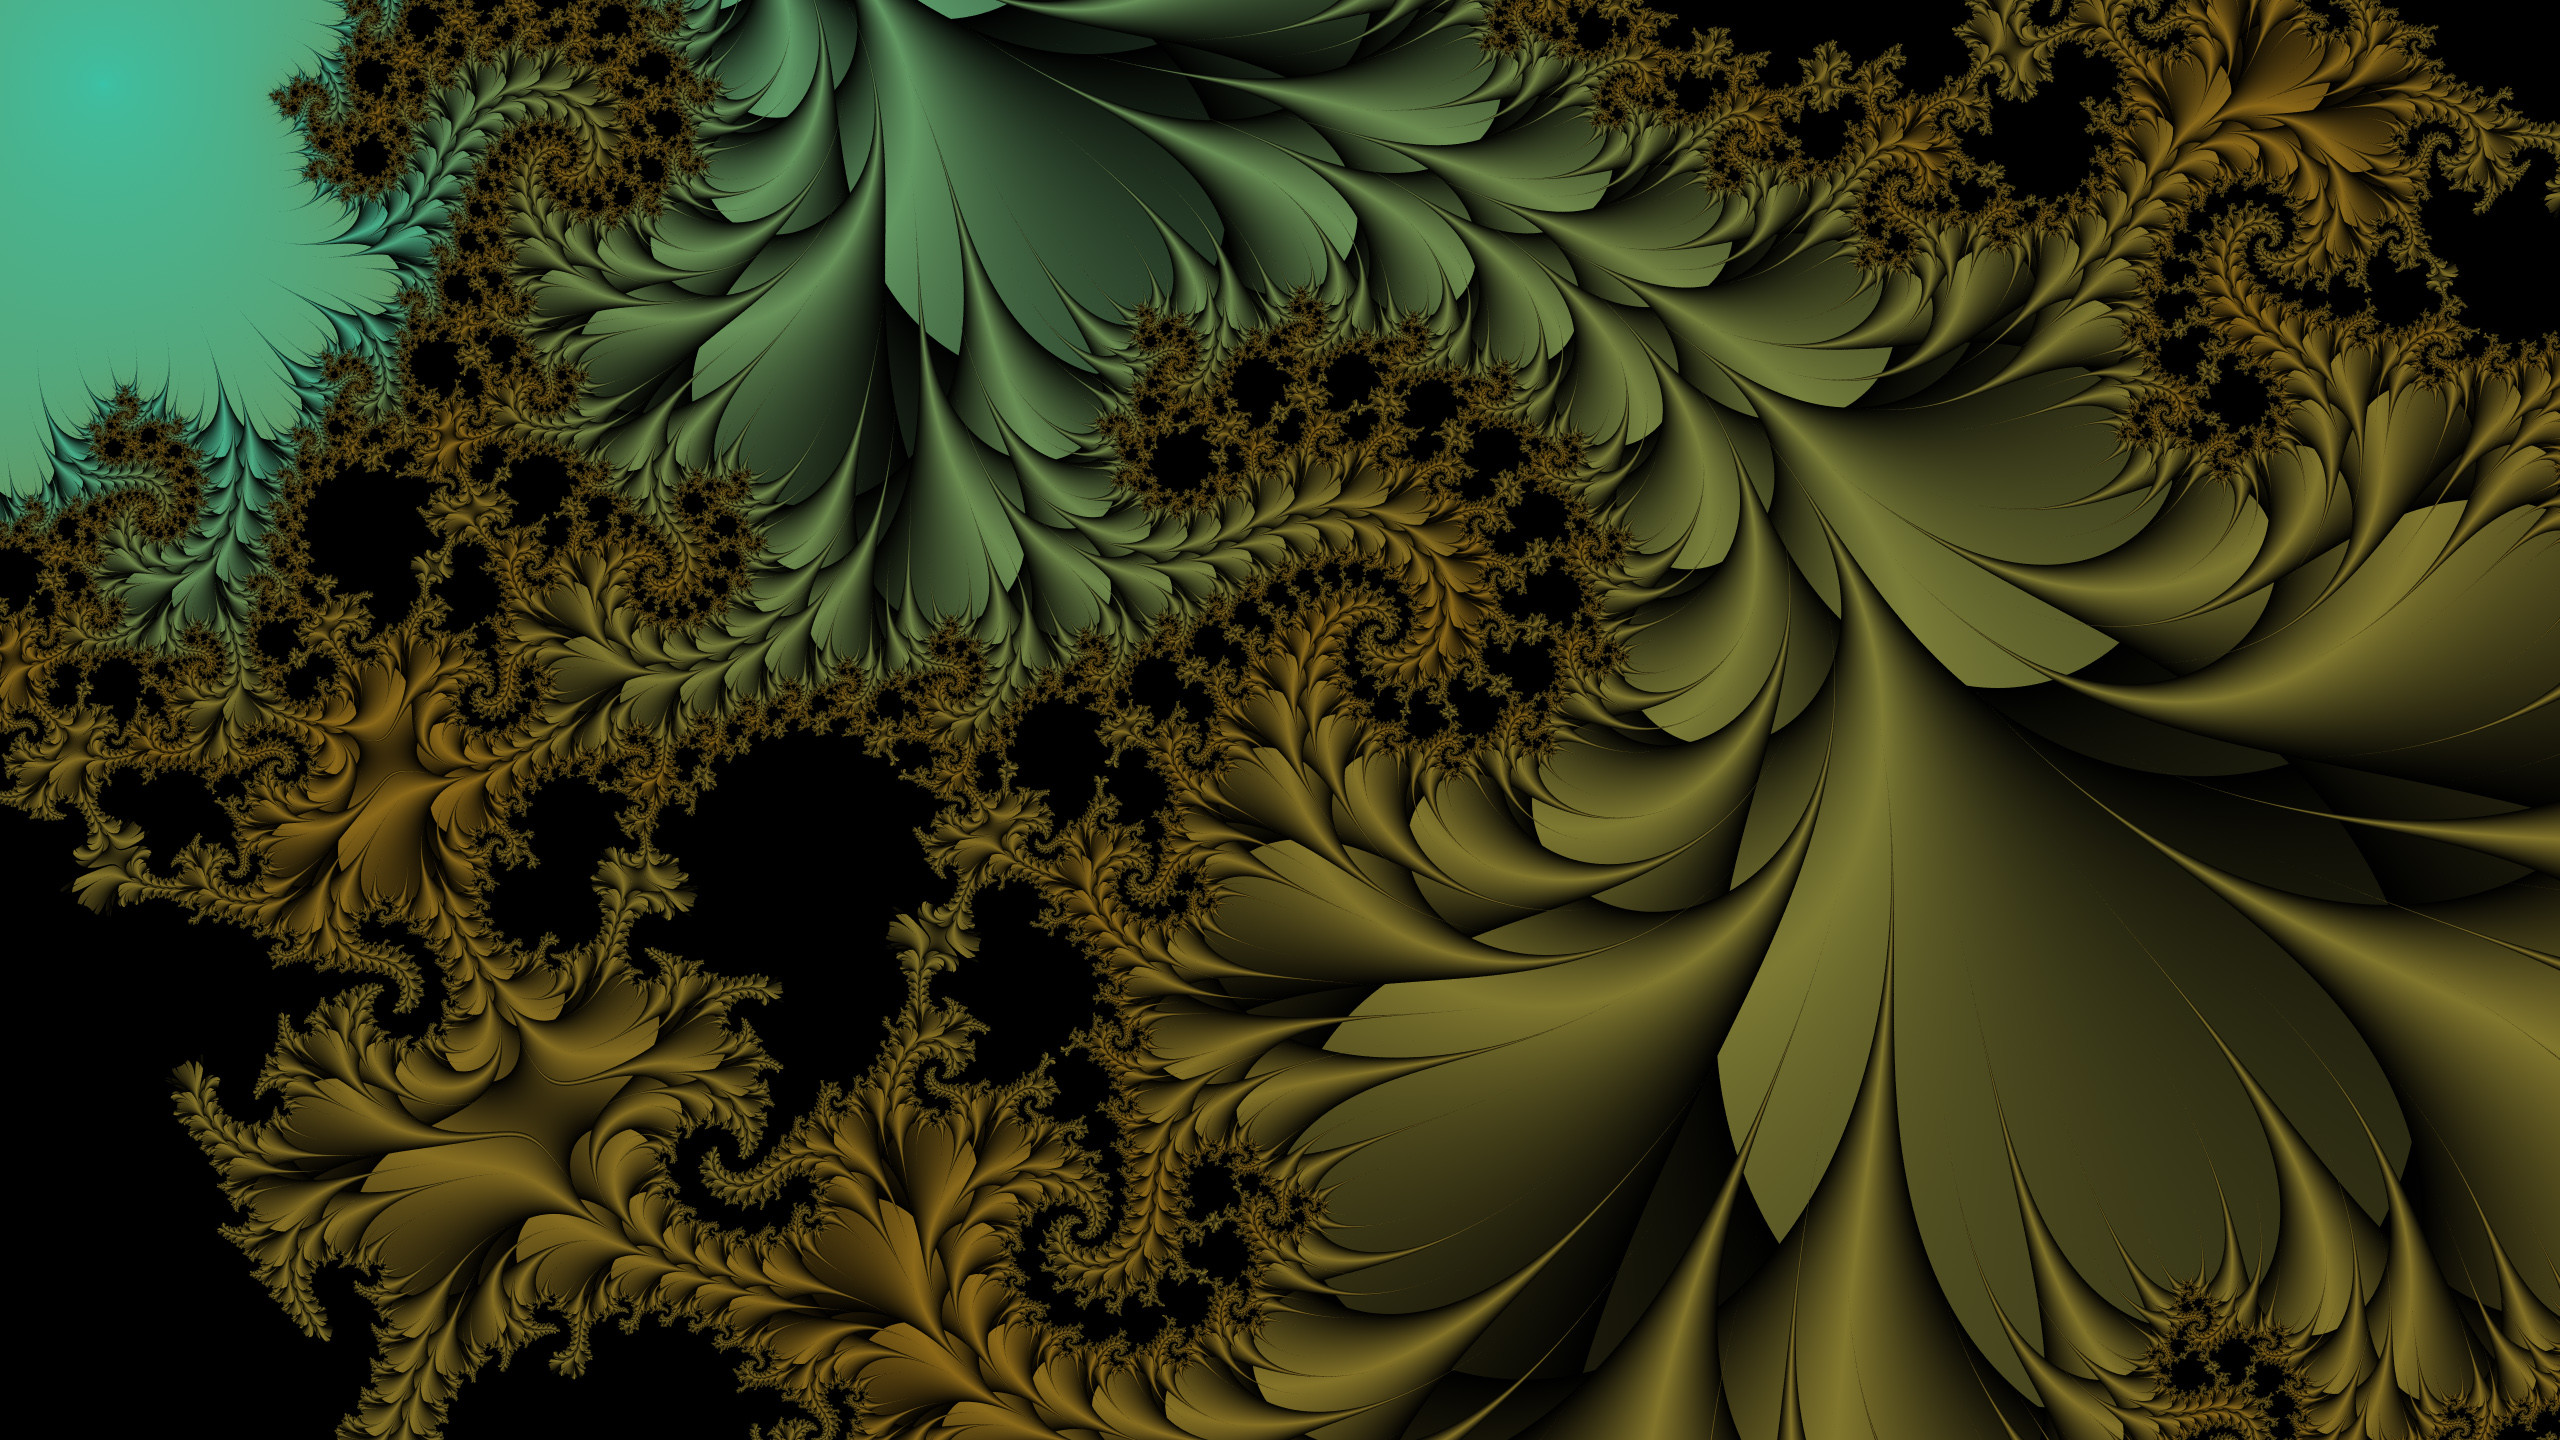 2560x1440 ... Fractal wallpaper hd by e-designer